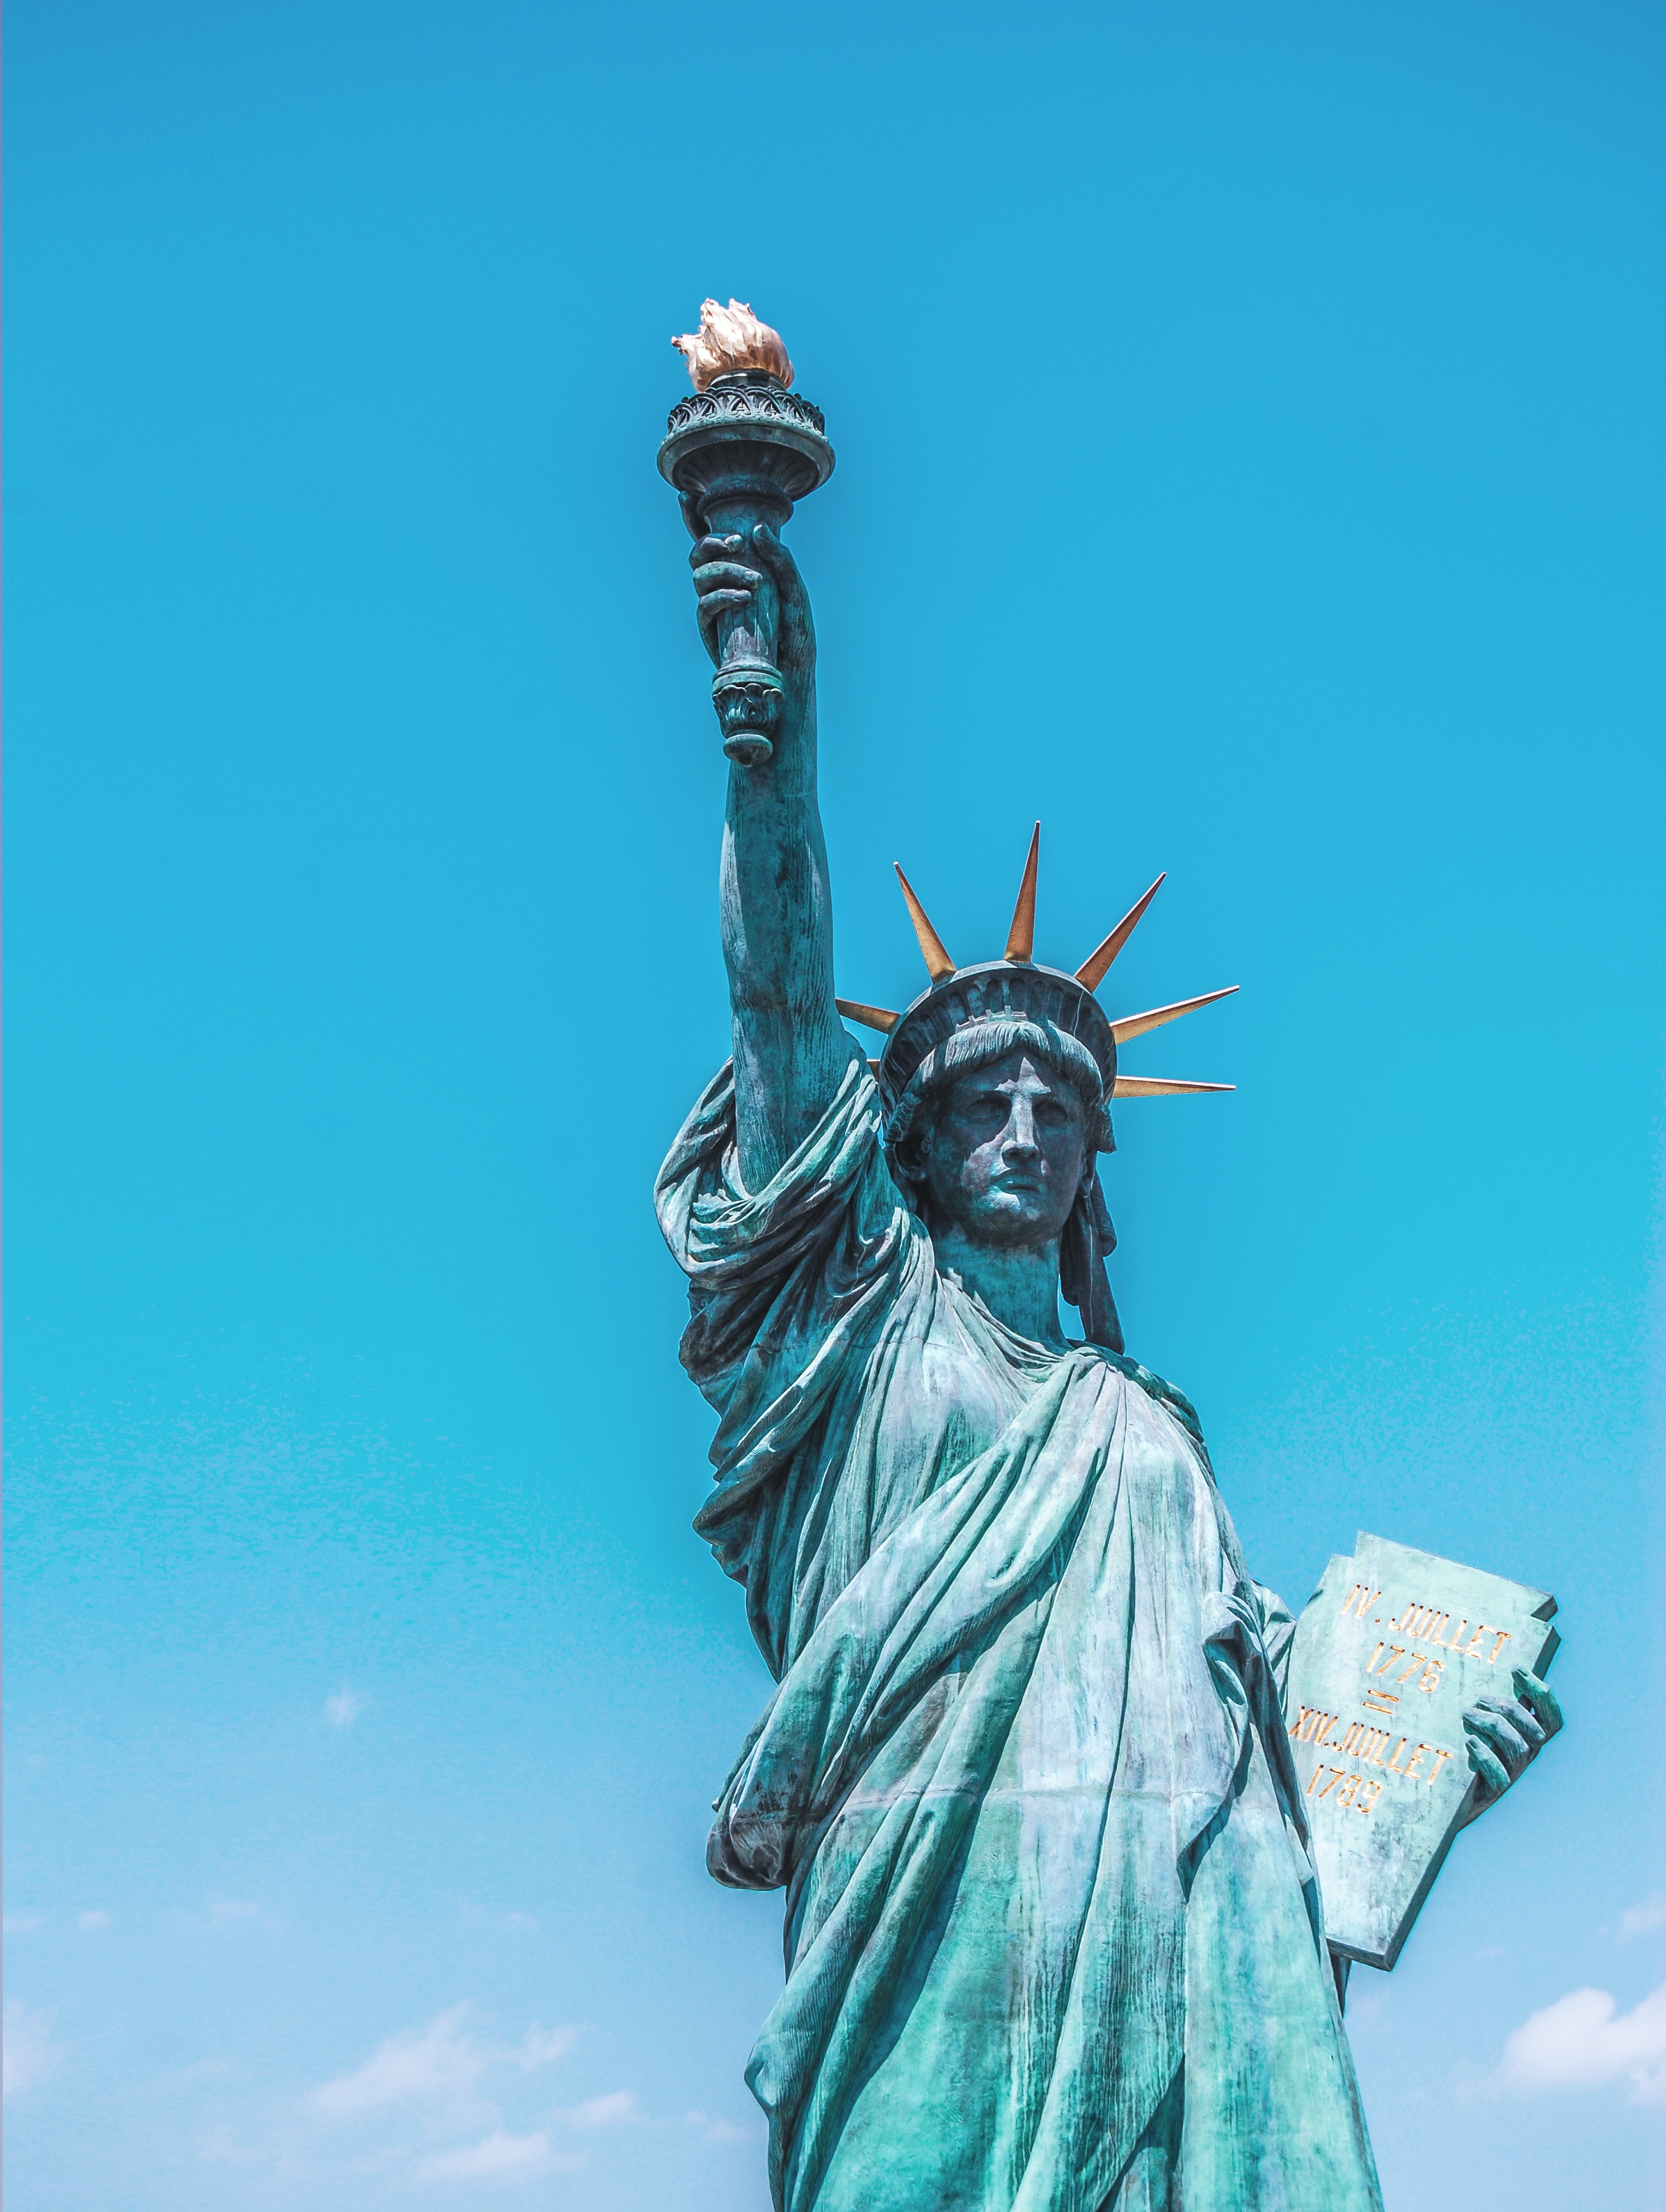 The Statue of Liberty with a bright blue sky